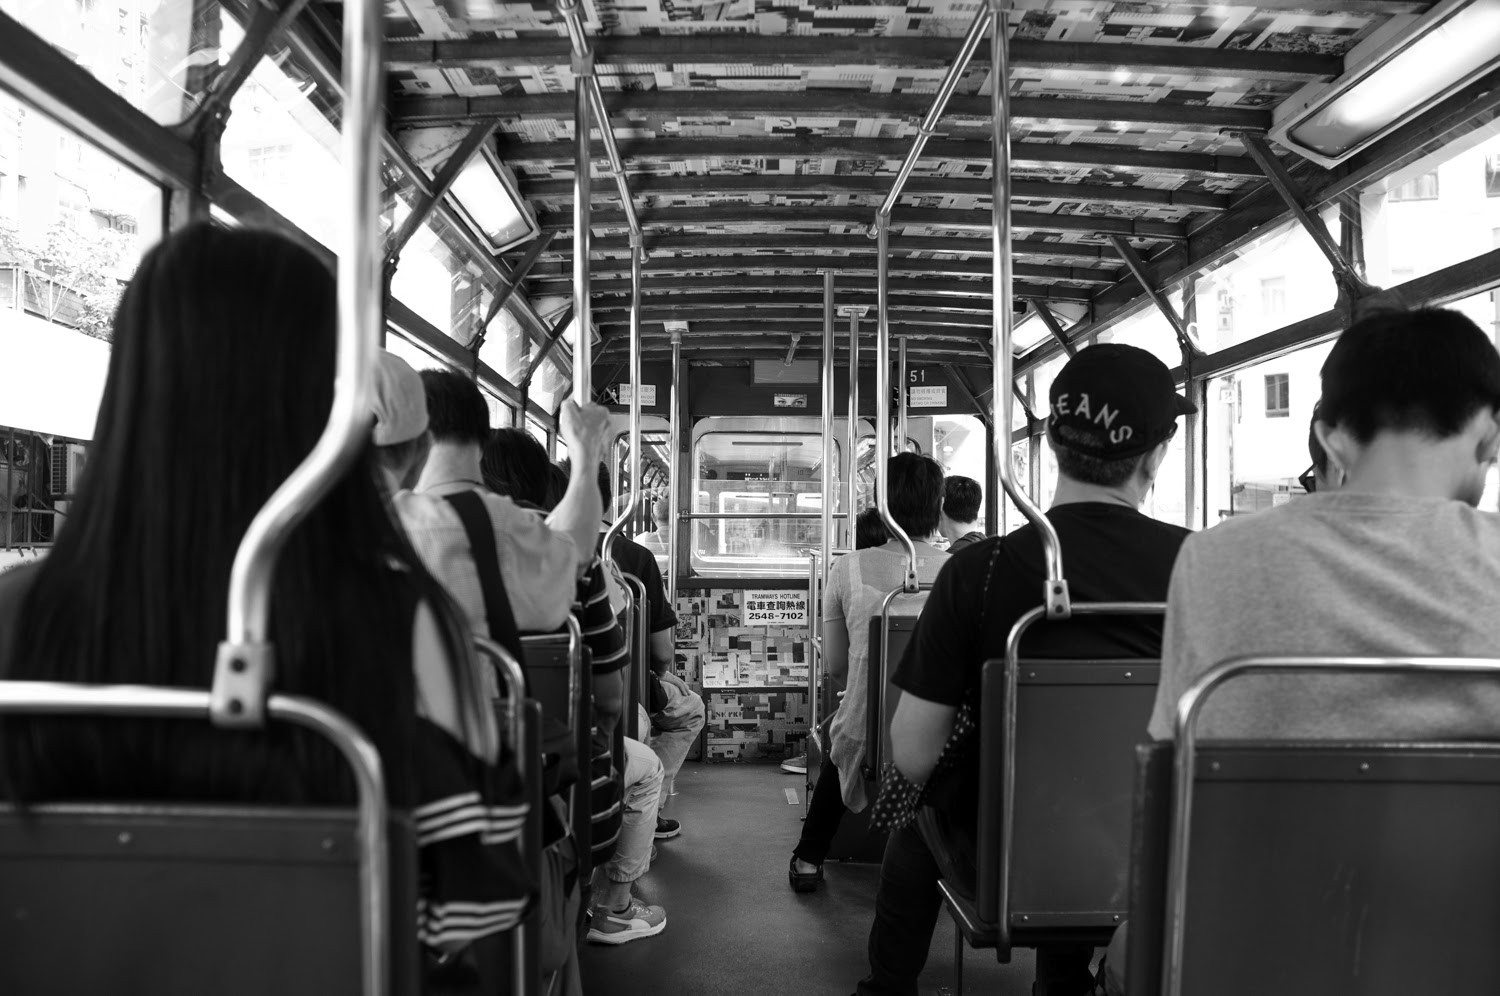 Riders on the Hong Kong tram in black and white